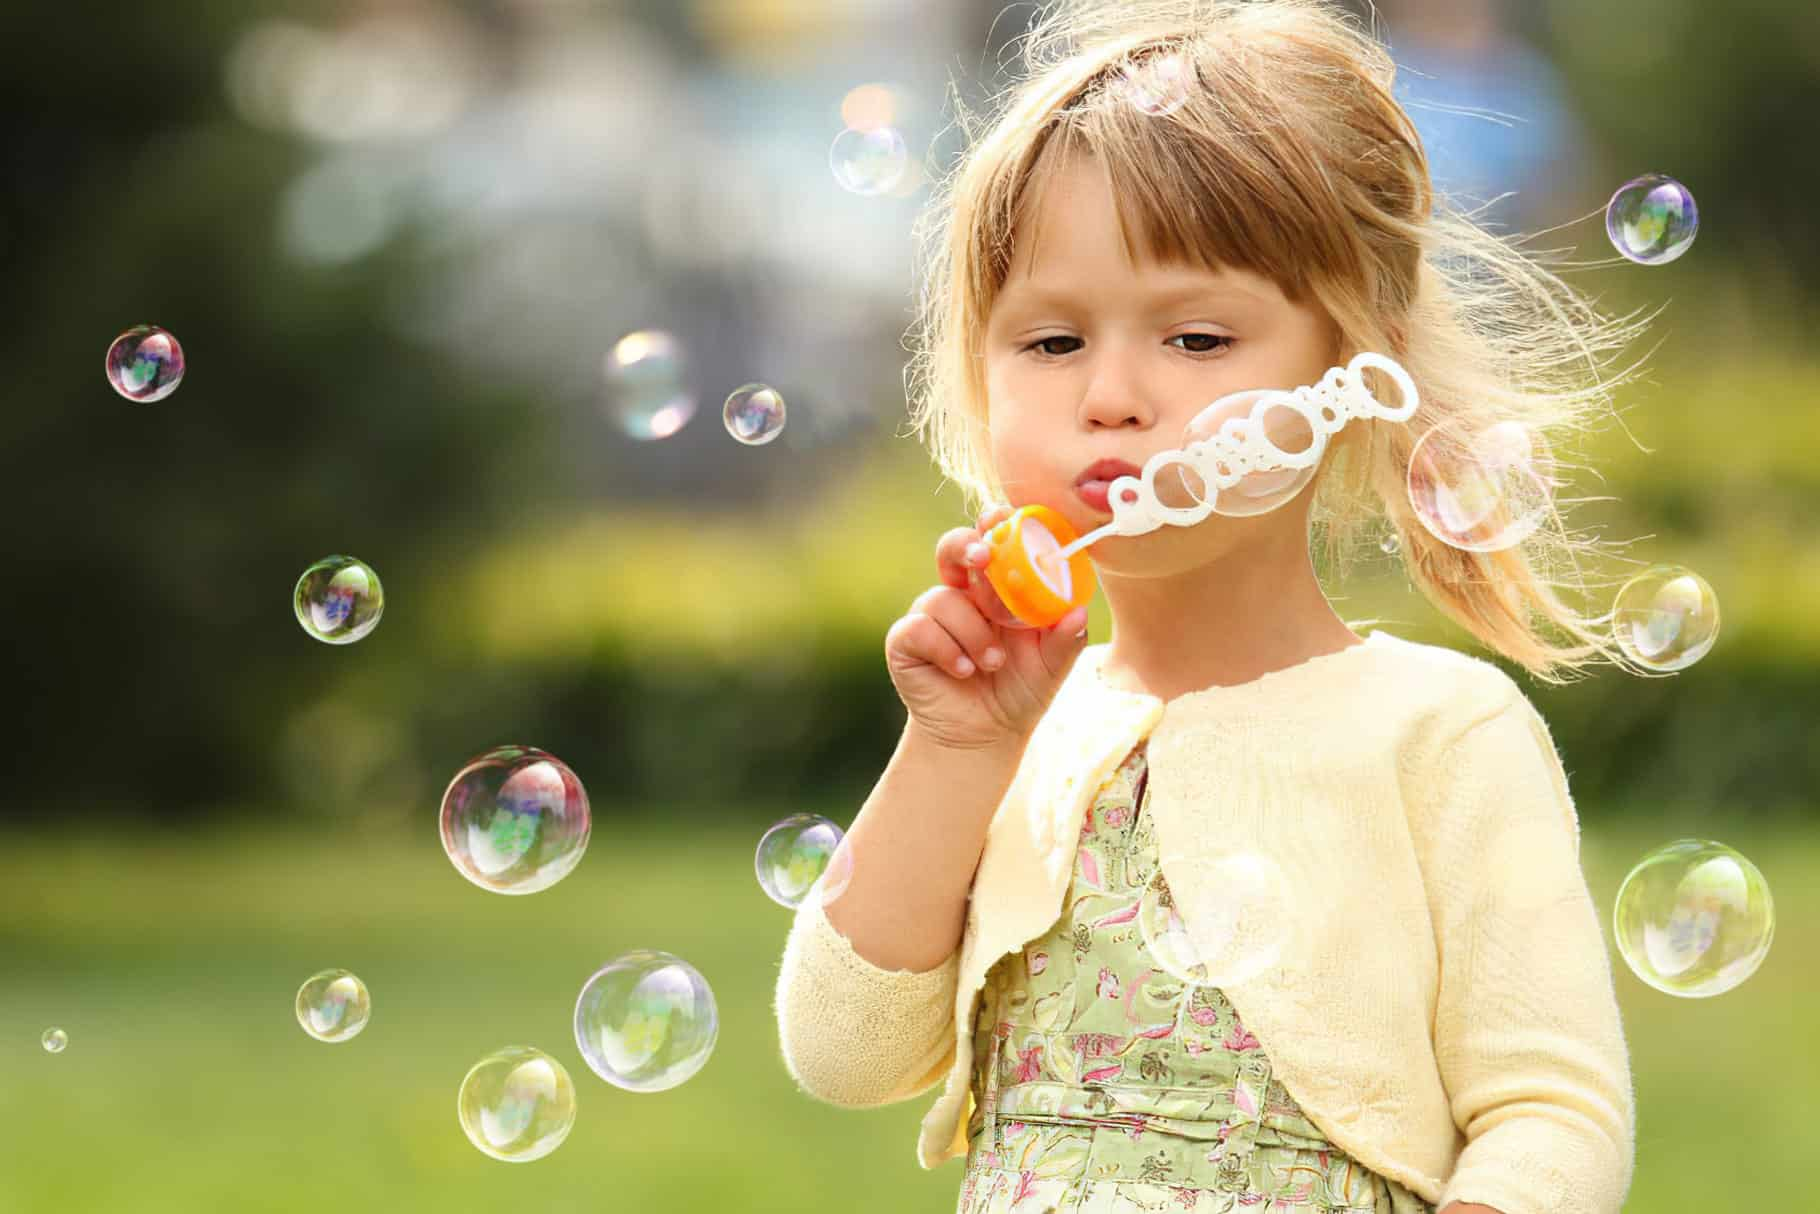 Bubbles 6.2 - Soap Bubble Overlays